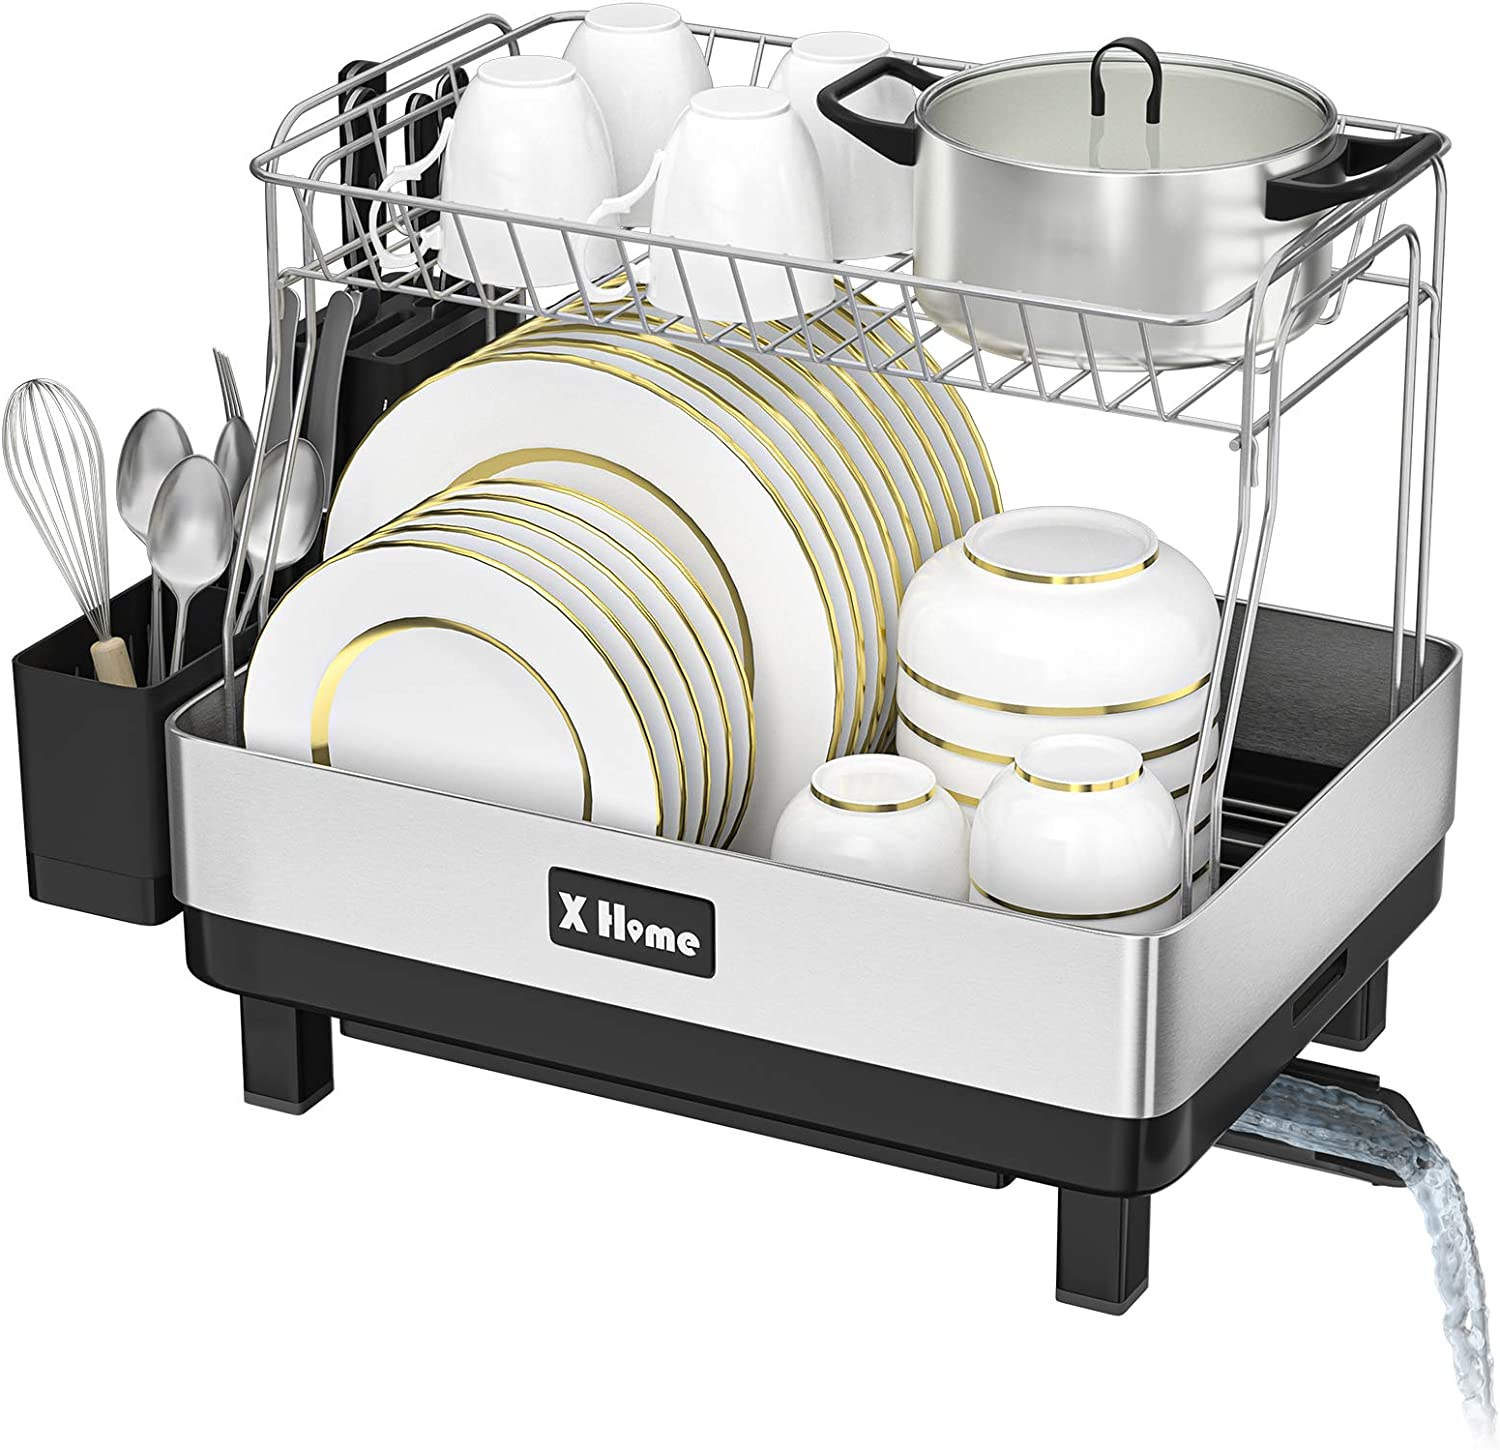 X Home Dish Racks for Counter with Drainage, Removable 2 Tier Kitchen Stainless Steel Frame Dish Rack with Drainboard and Swivel Spout, 21 Inch, Fingerprint-proof